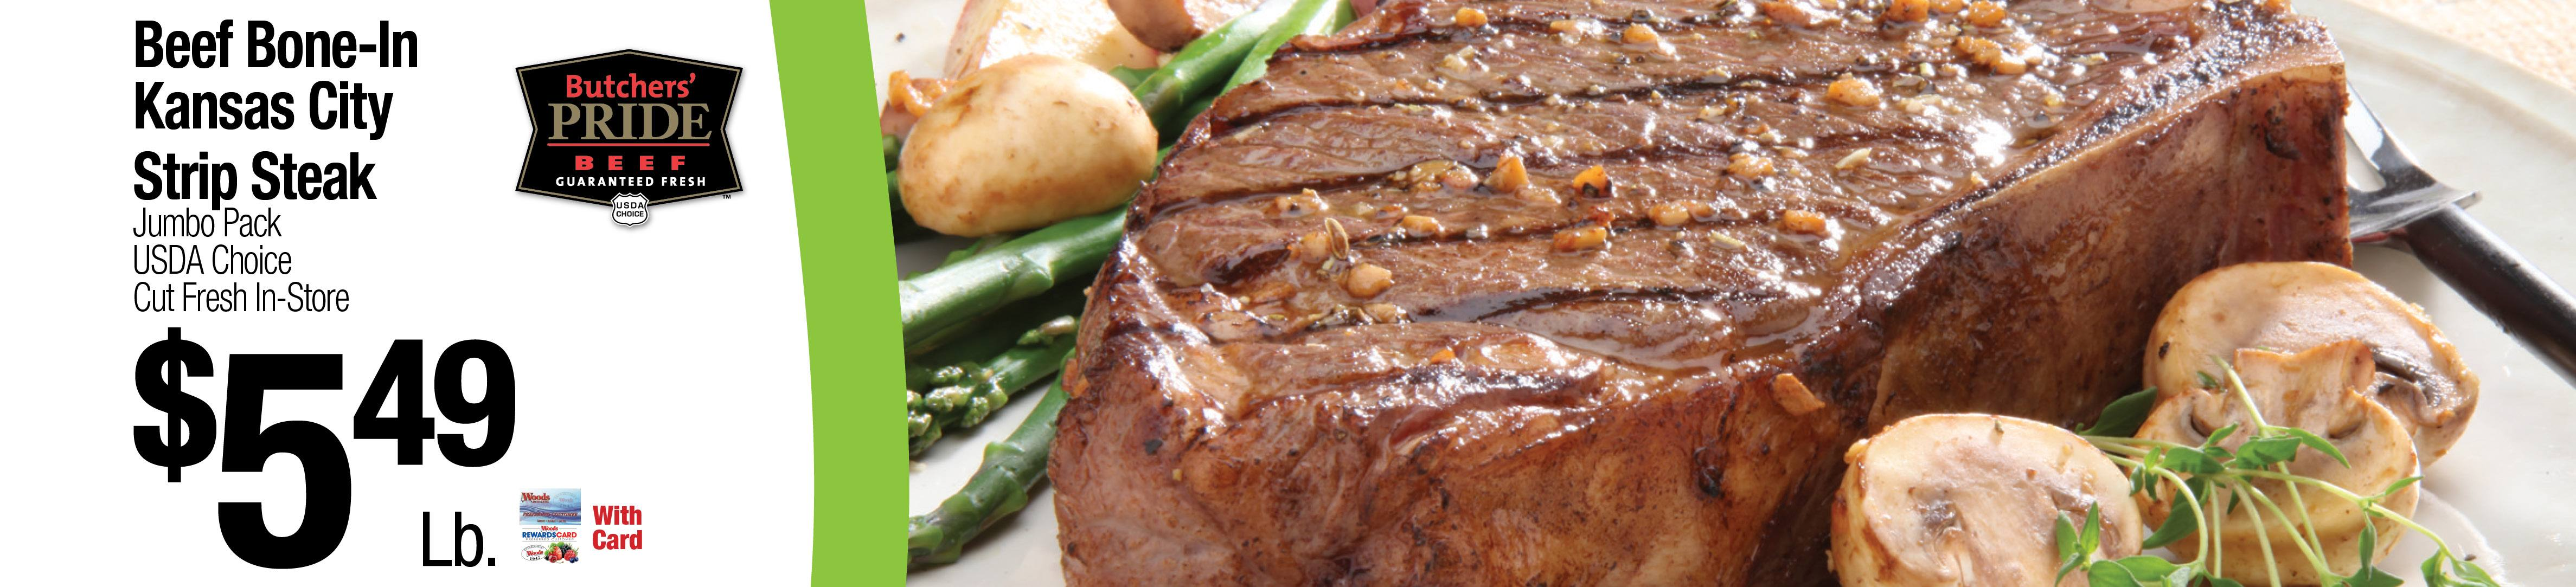 Beef Bone-In Kansas City Strip Steak - $5.49Lb